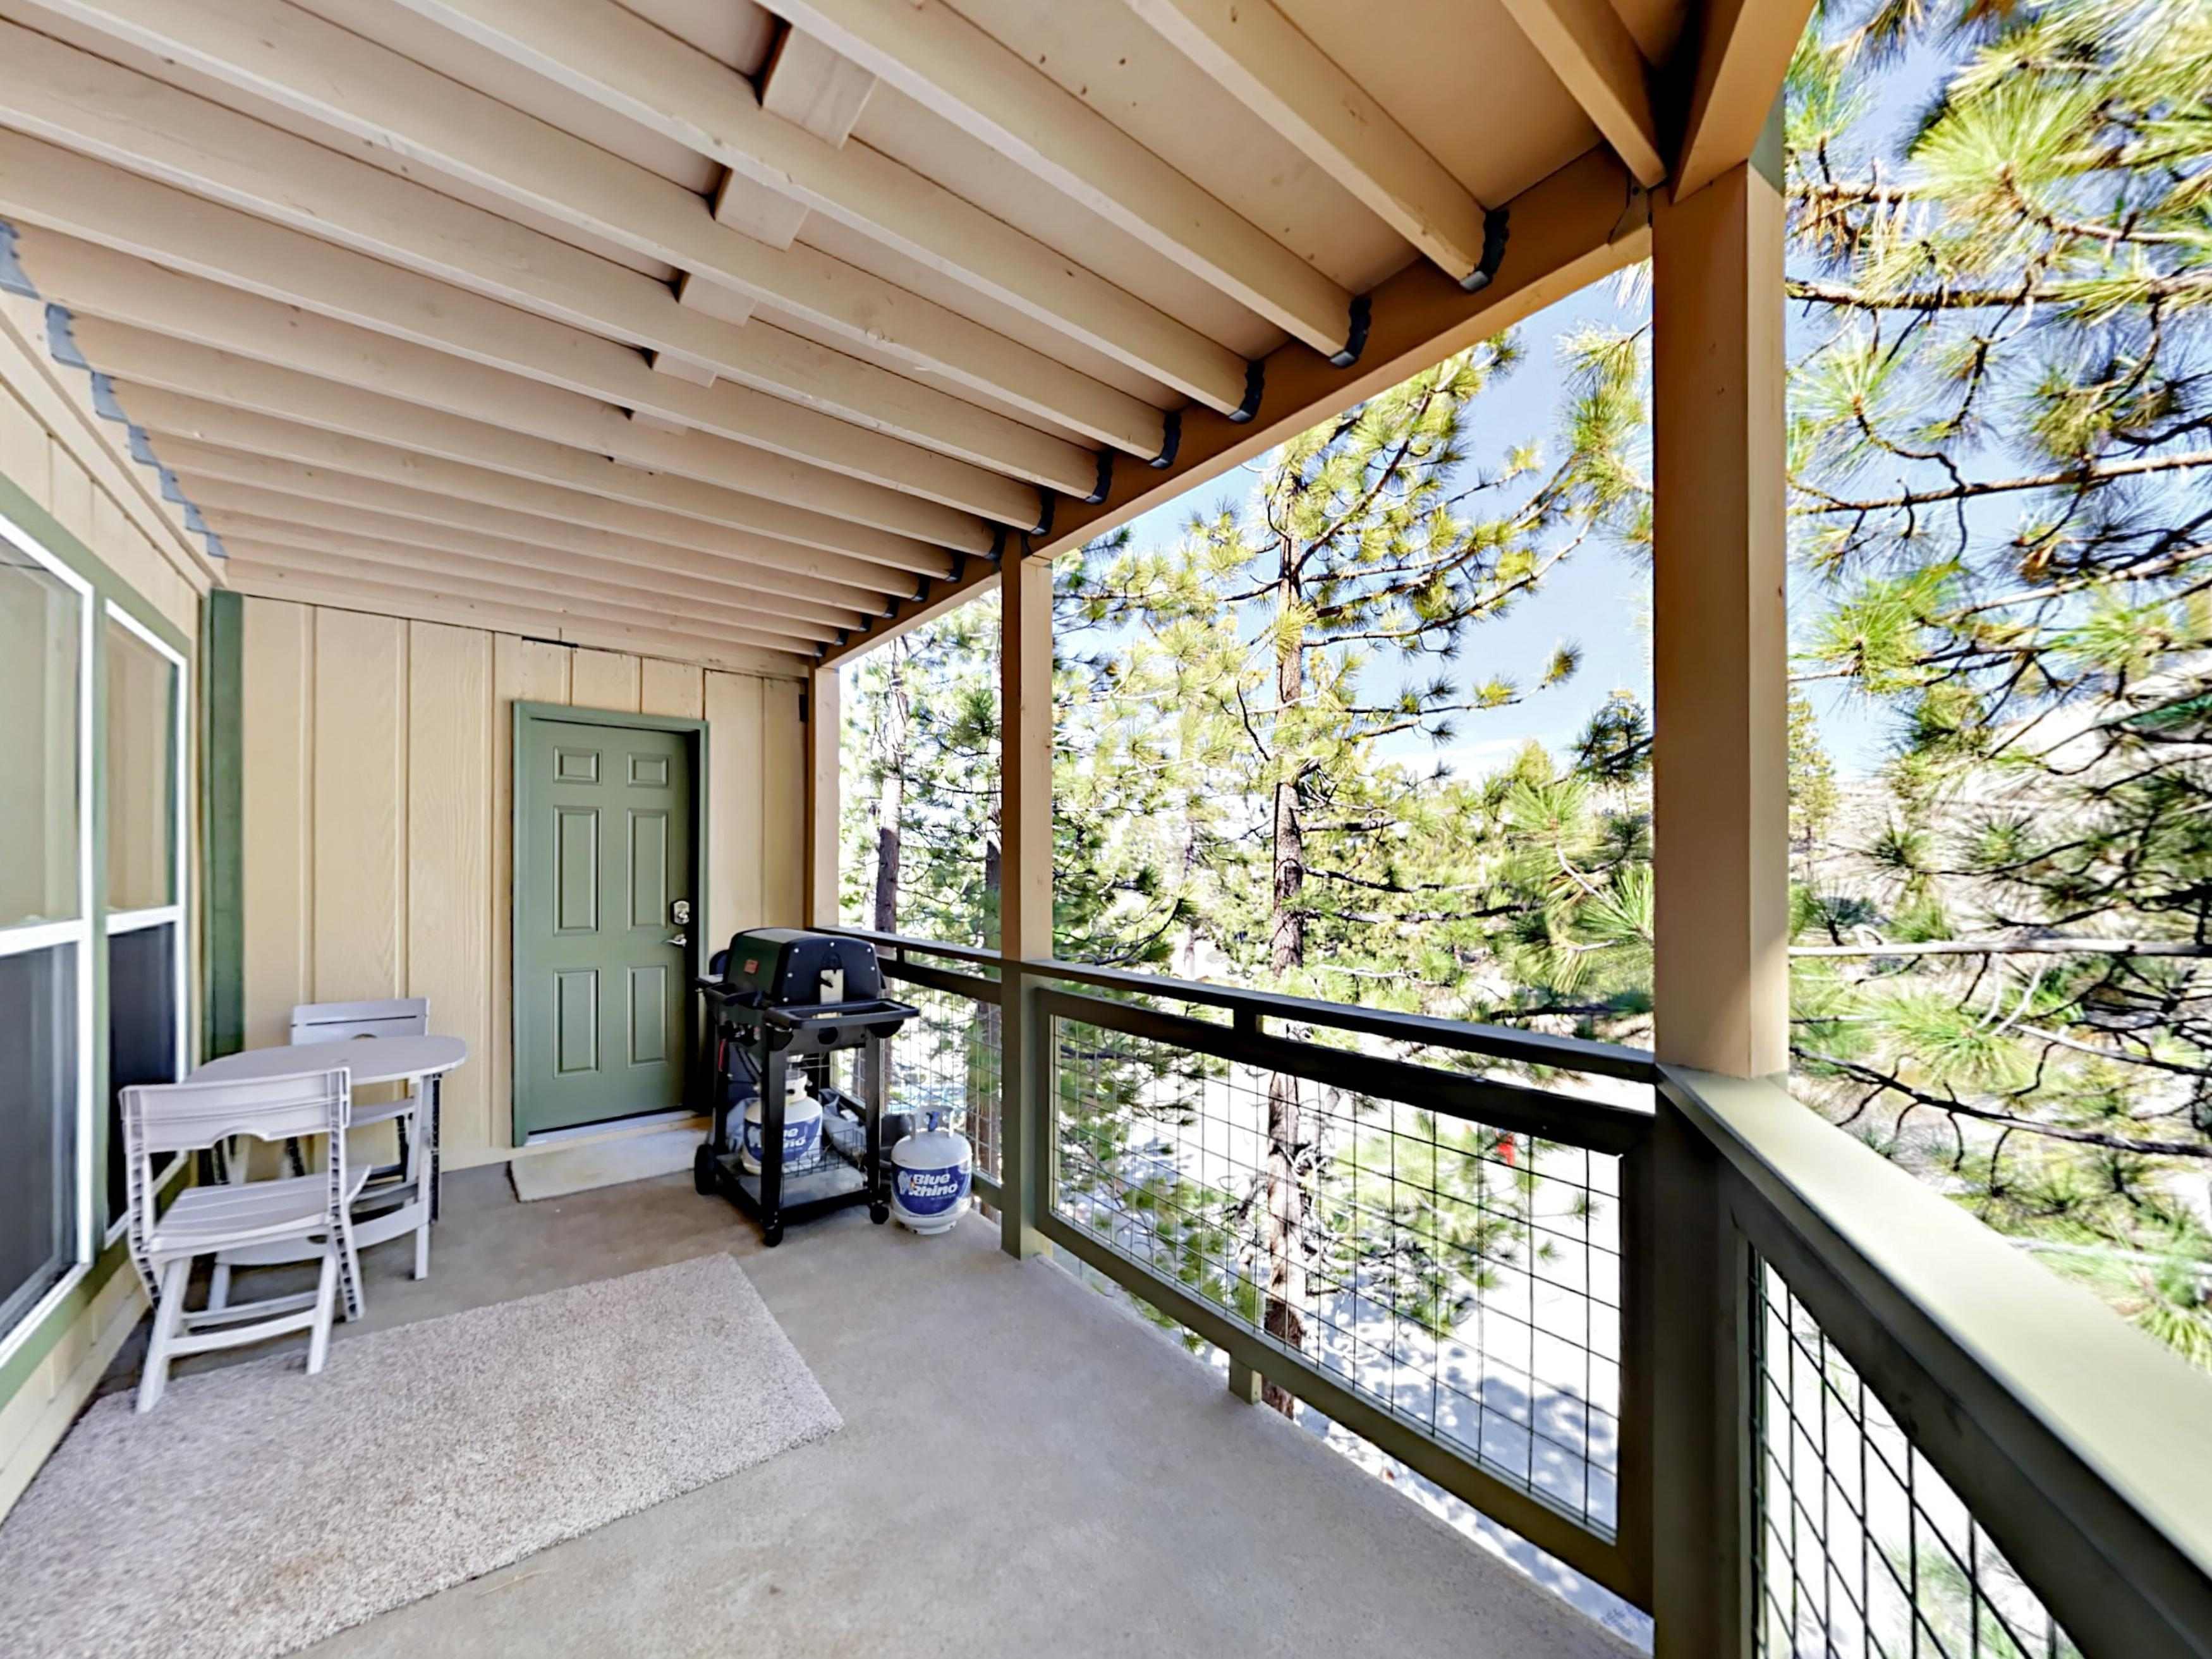 Take in views of tall pines bordering the property.